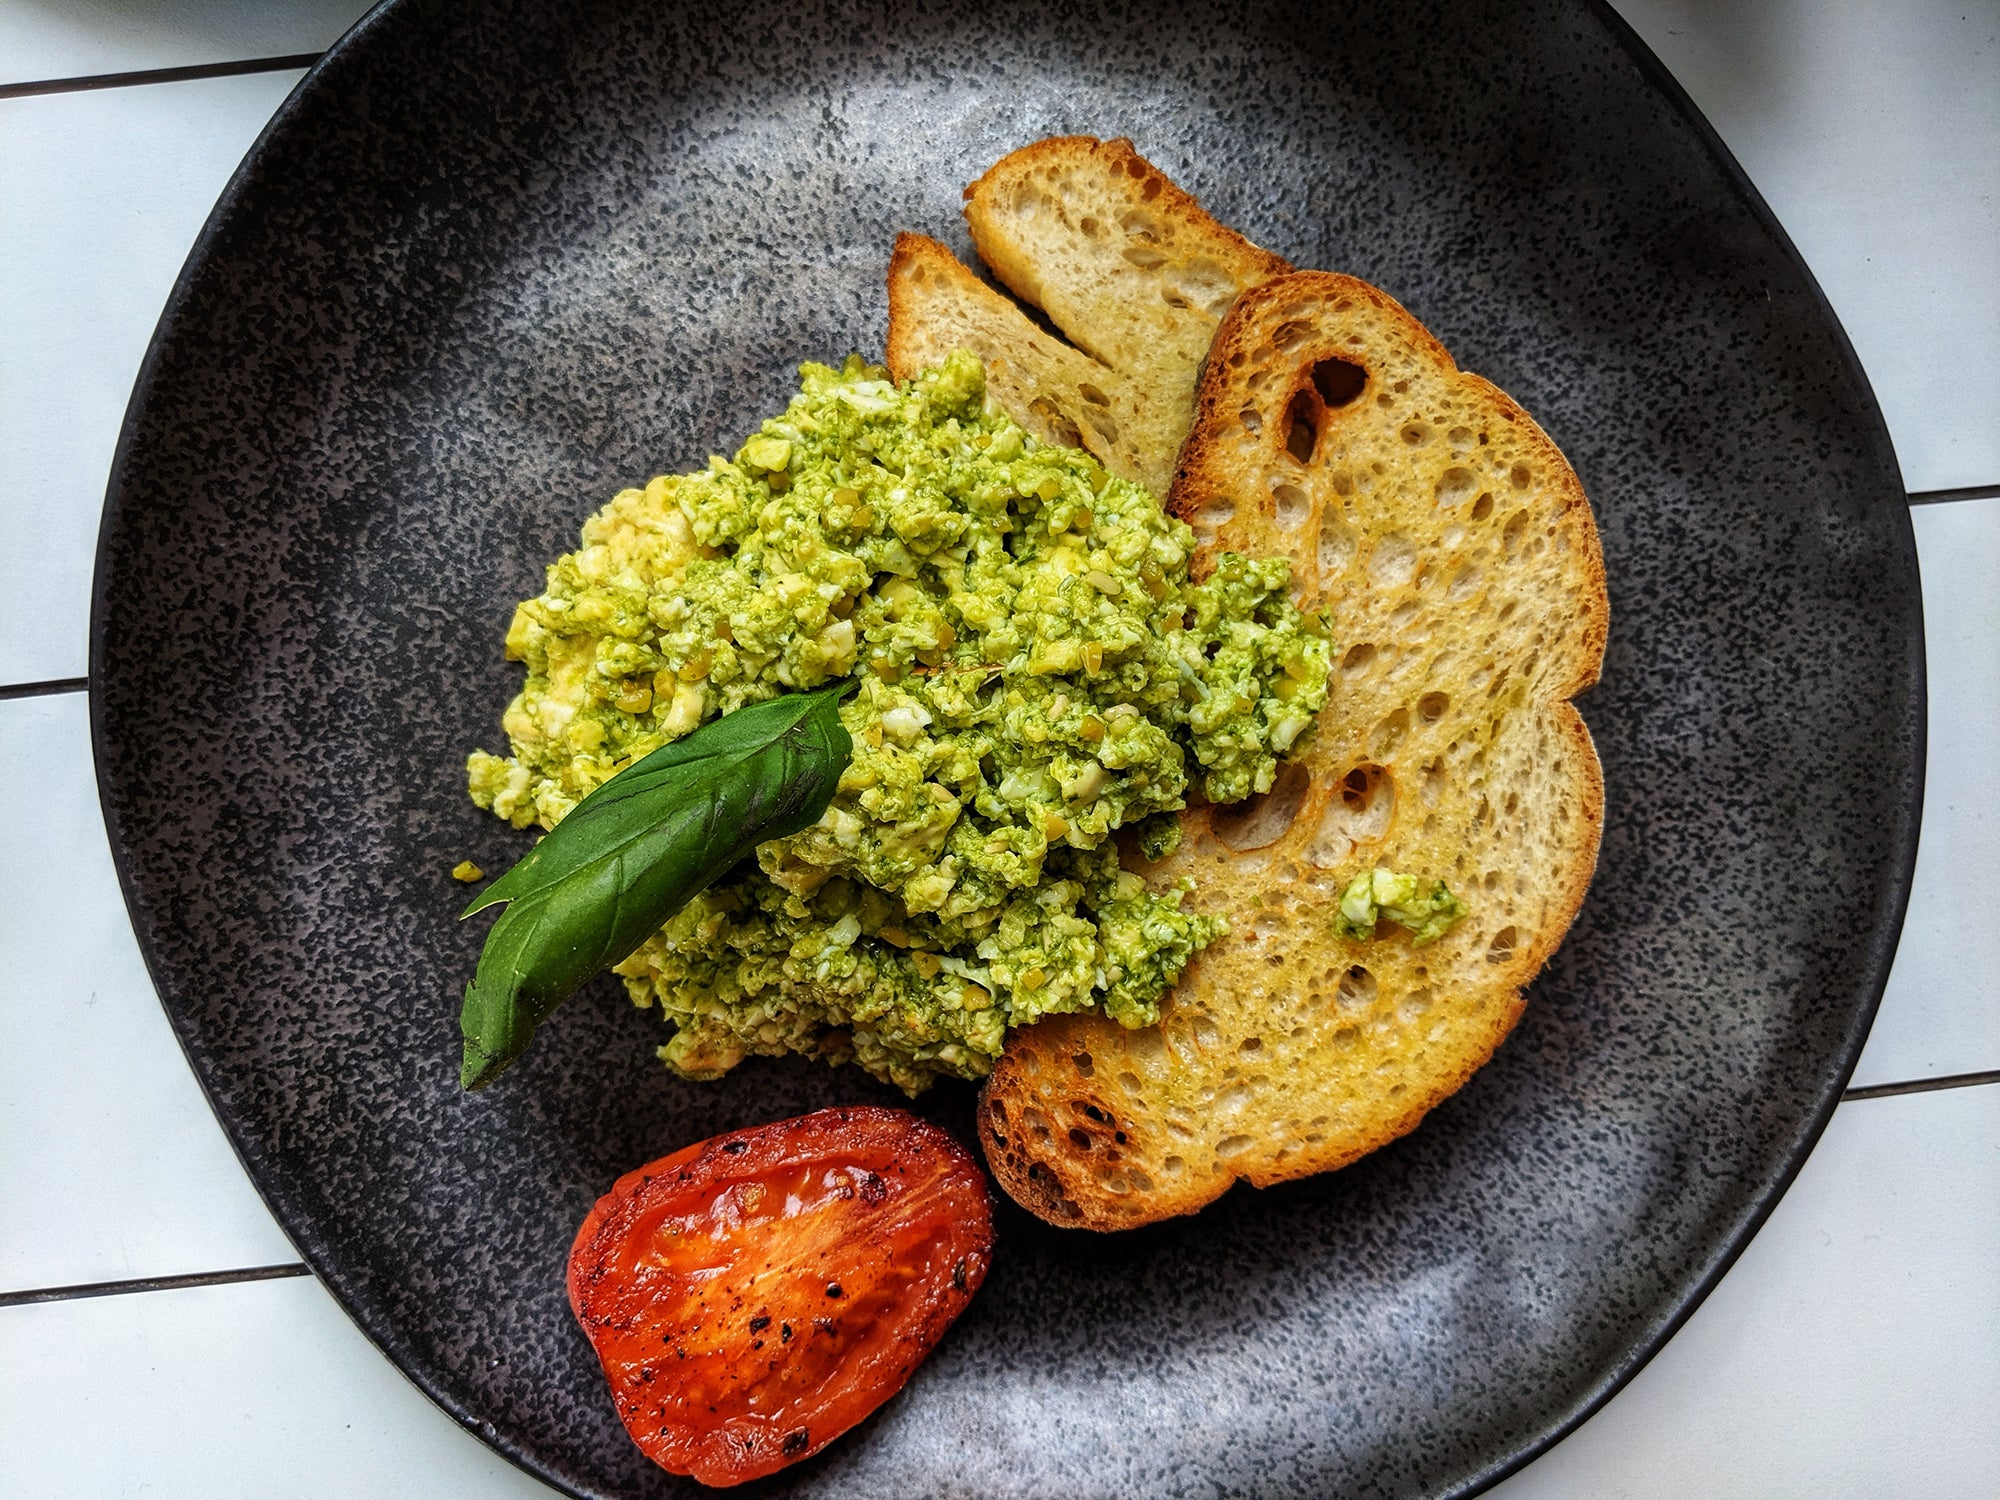 toast on a black plate with a tomato and guacamole